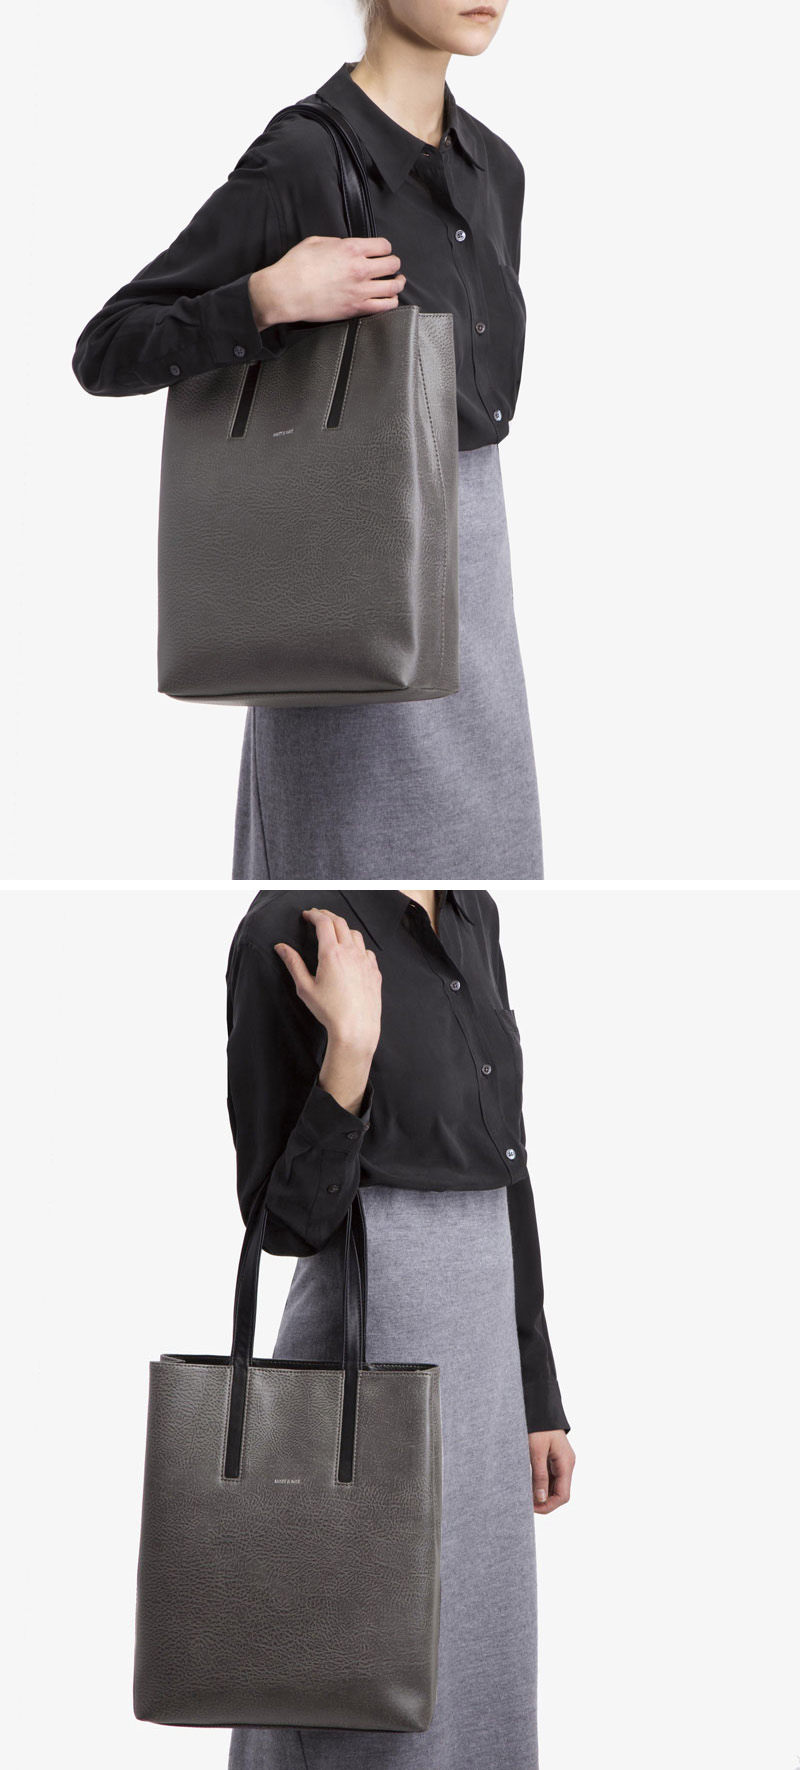 The lining inside this grey and black modern vegan leather tote is made from recycled bottles.